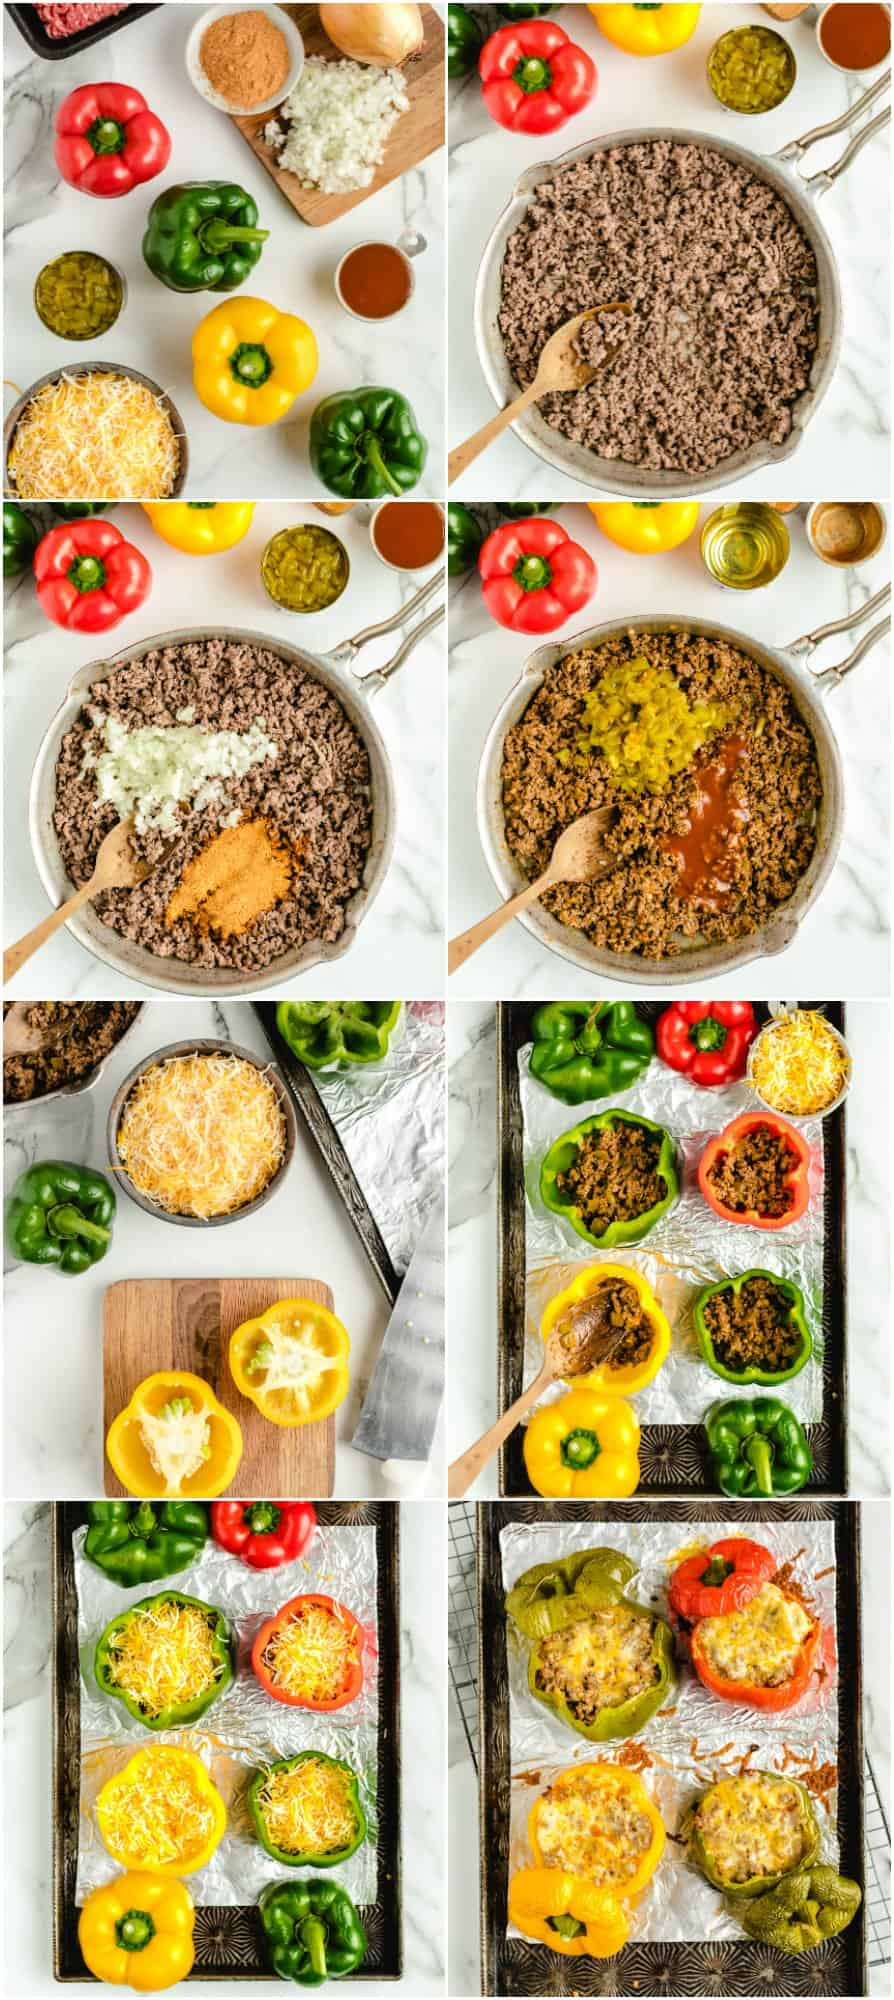 step by step photos of how to make stuffed peppers